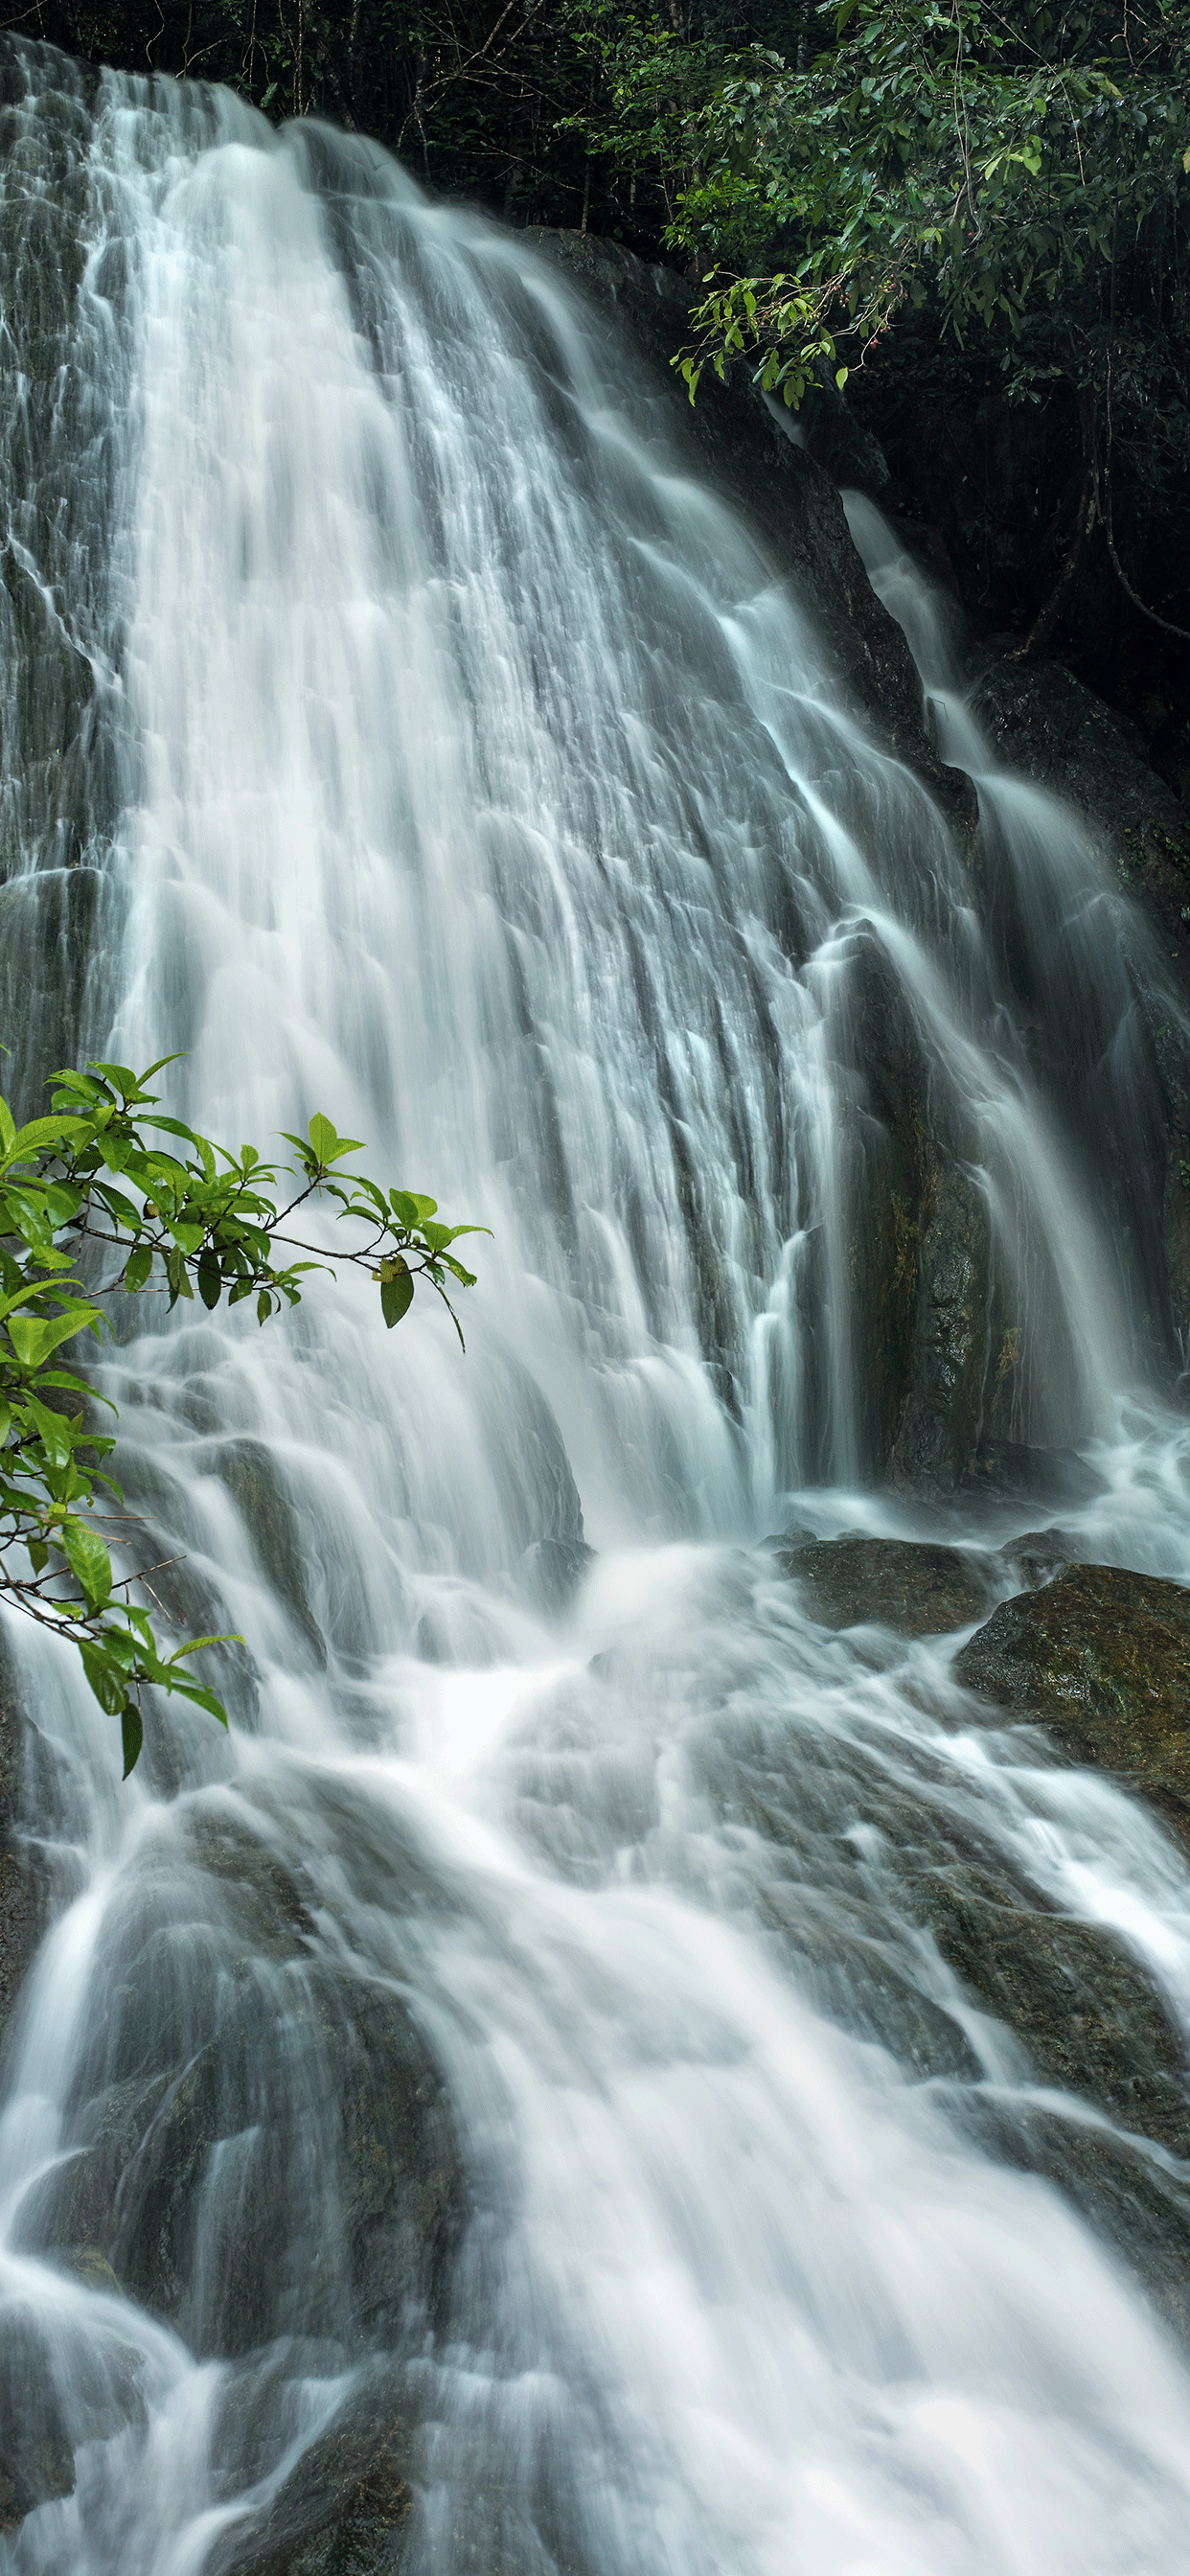 iPhone wallpapers waterfall forest rocks Waterfall